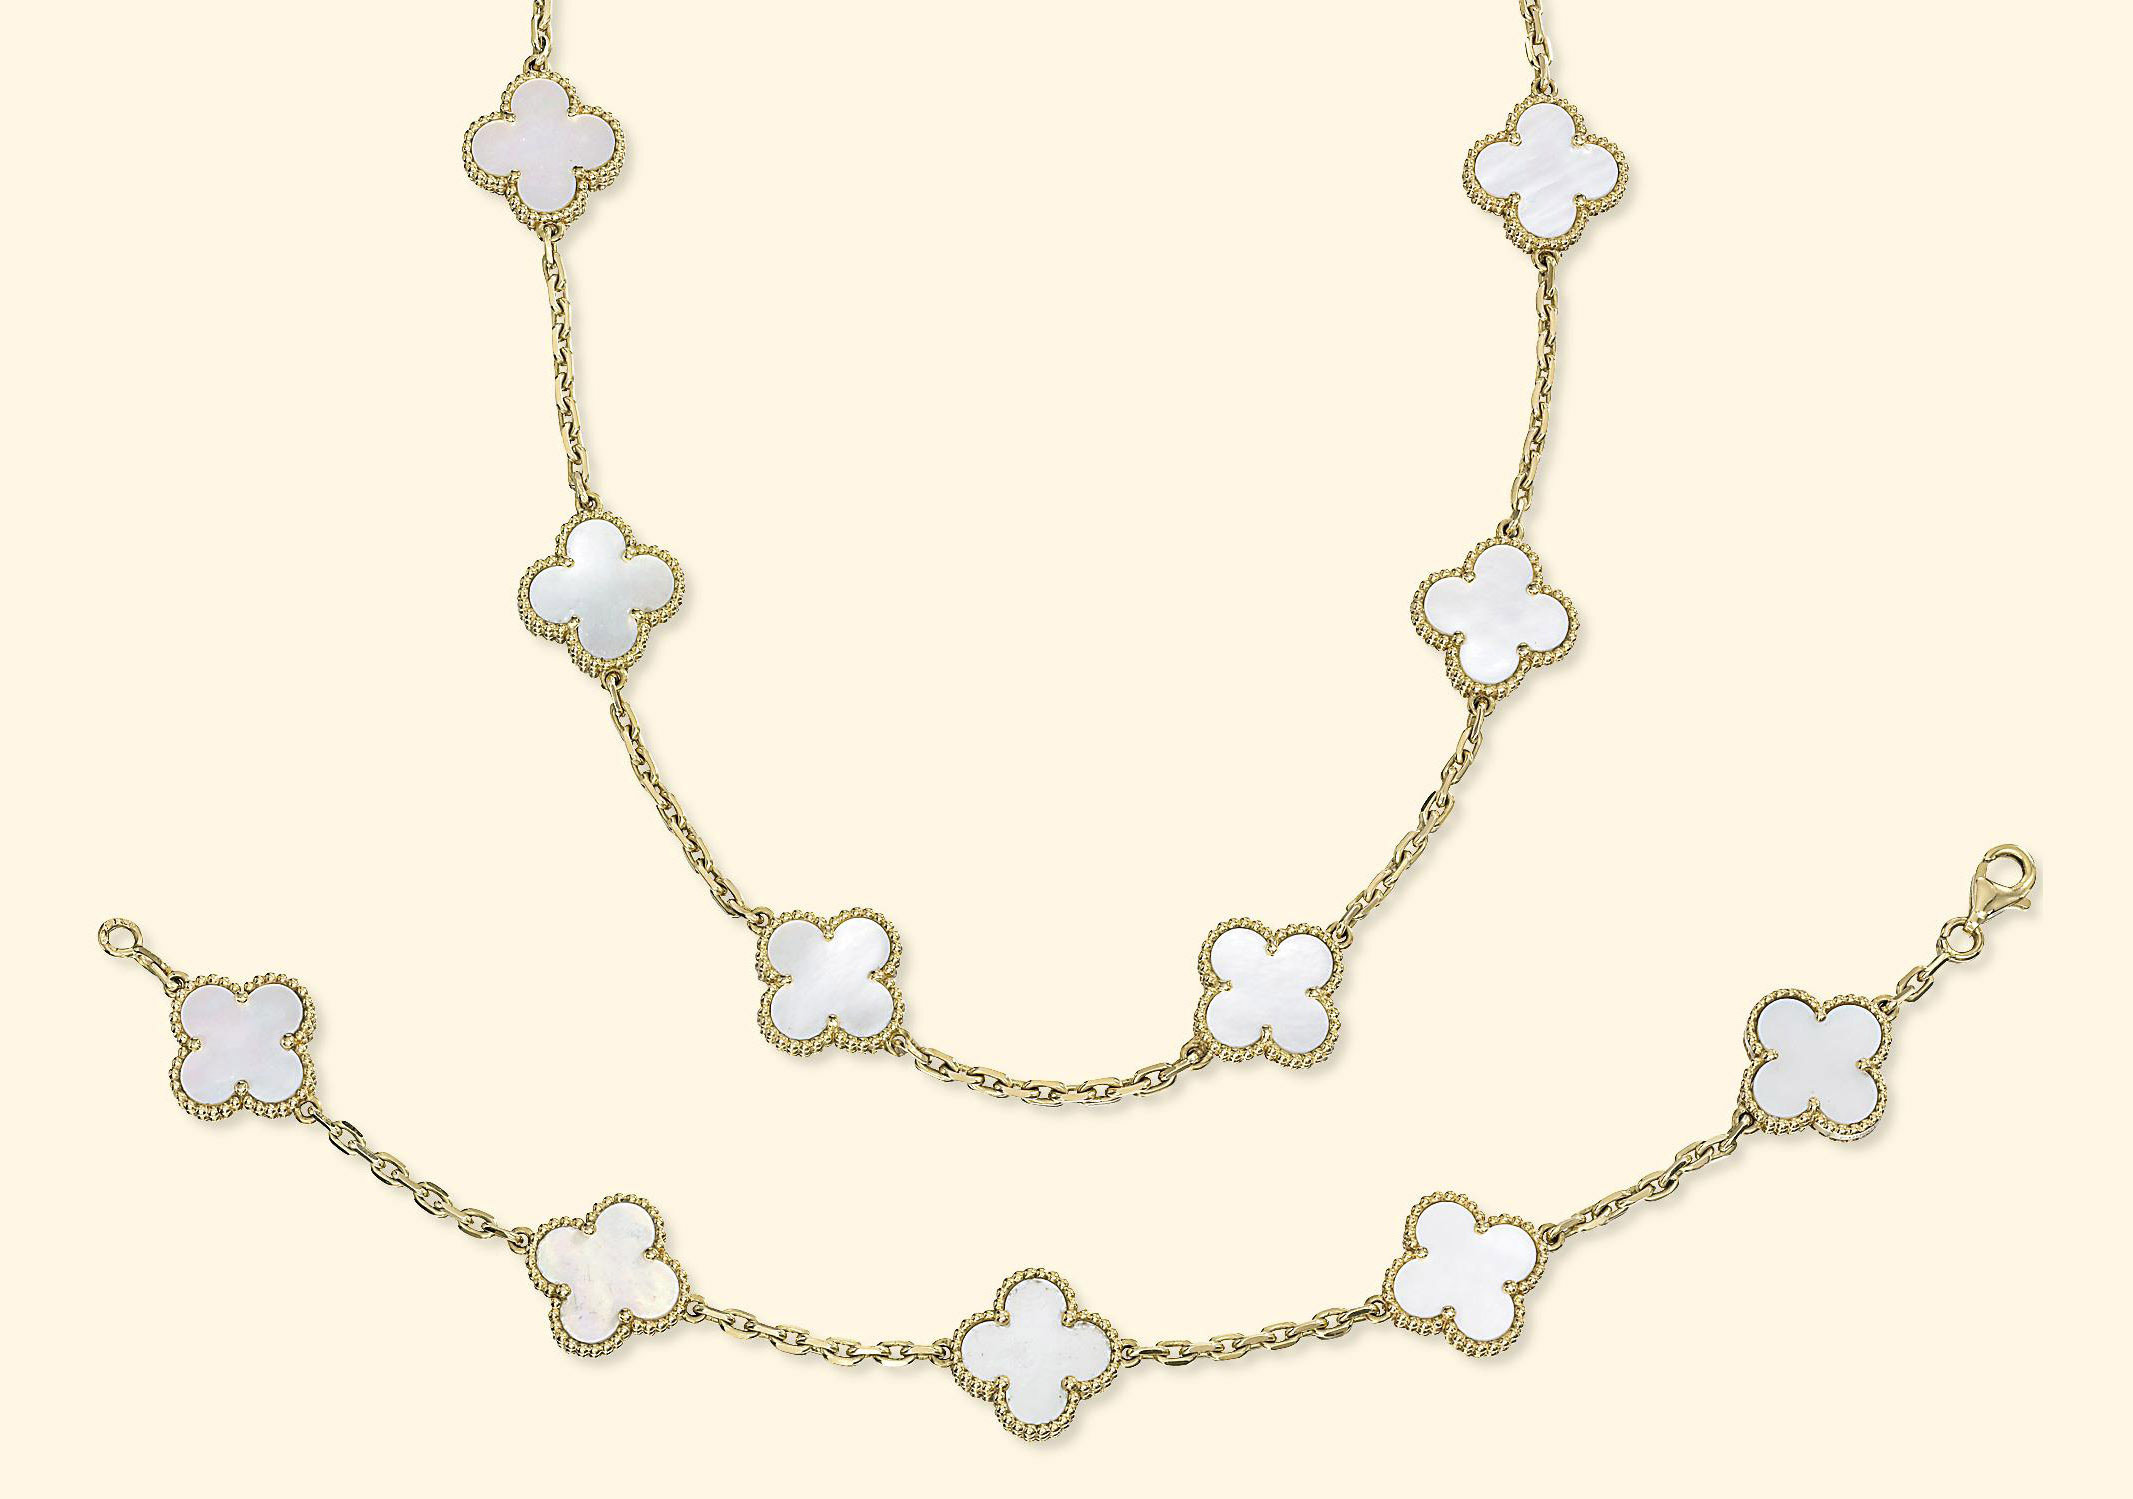 A SET OF GOLD AND MOTHER-OF-PEARL 'ALHAMBRA' JEWELLERY, BY VAN CLEEF & ARPELS